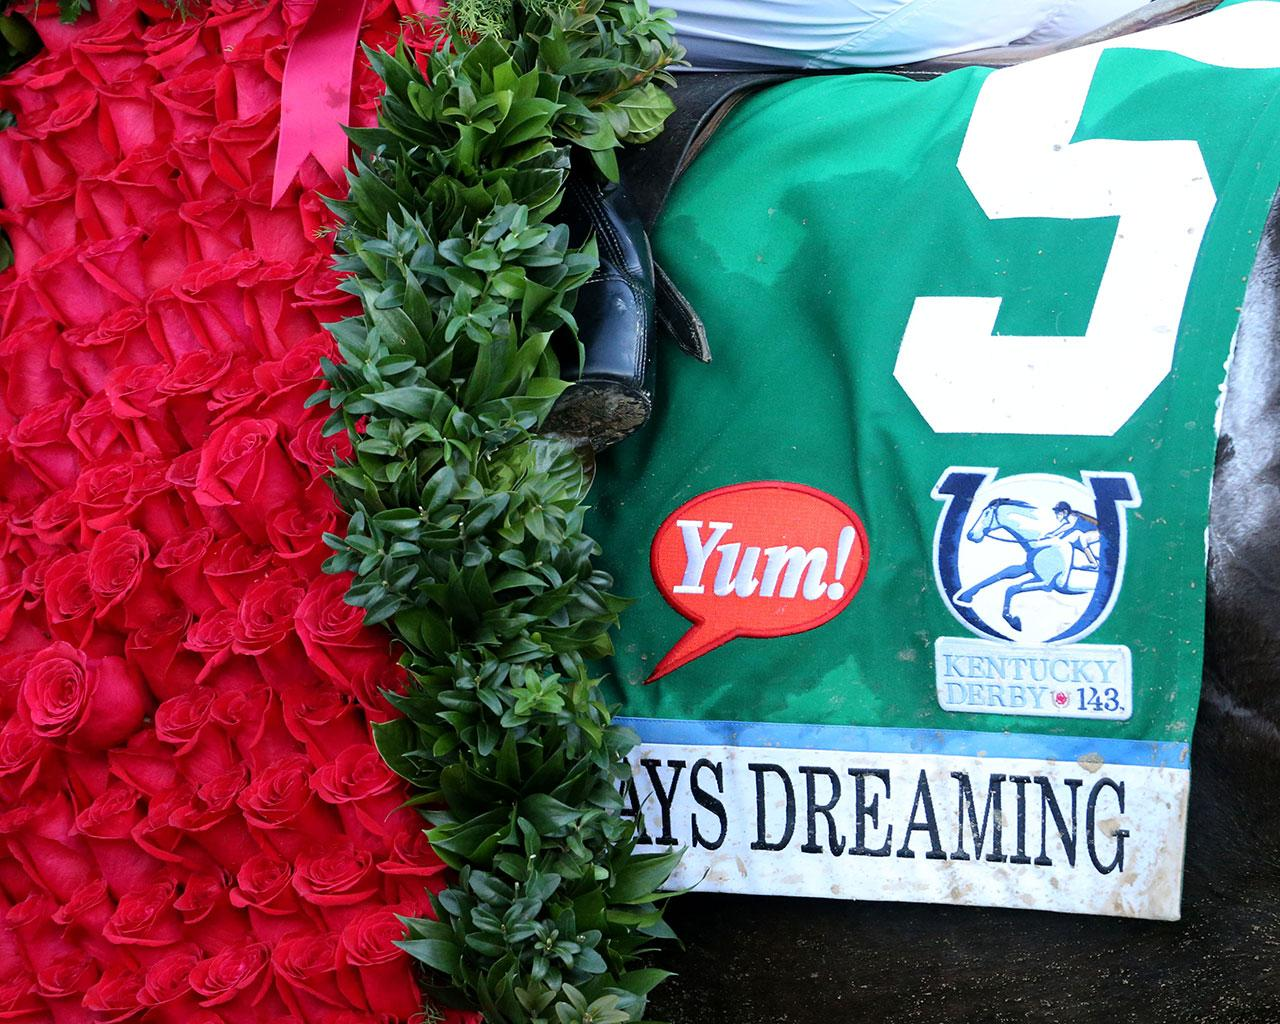 ALWAYS-DREAMING----The-Kentucky-Derby-Gr-1---143rd-Running---05-06-17---R12---CD---Saddle-Towel-1